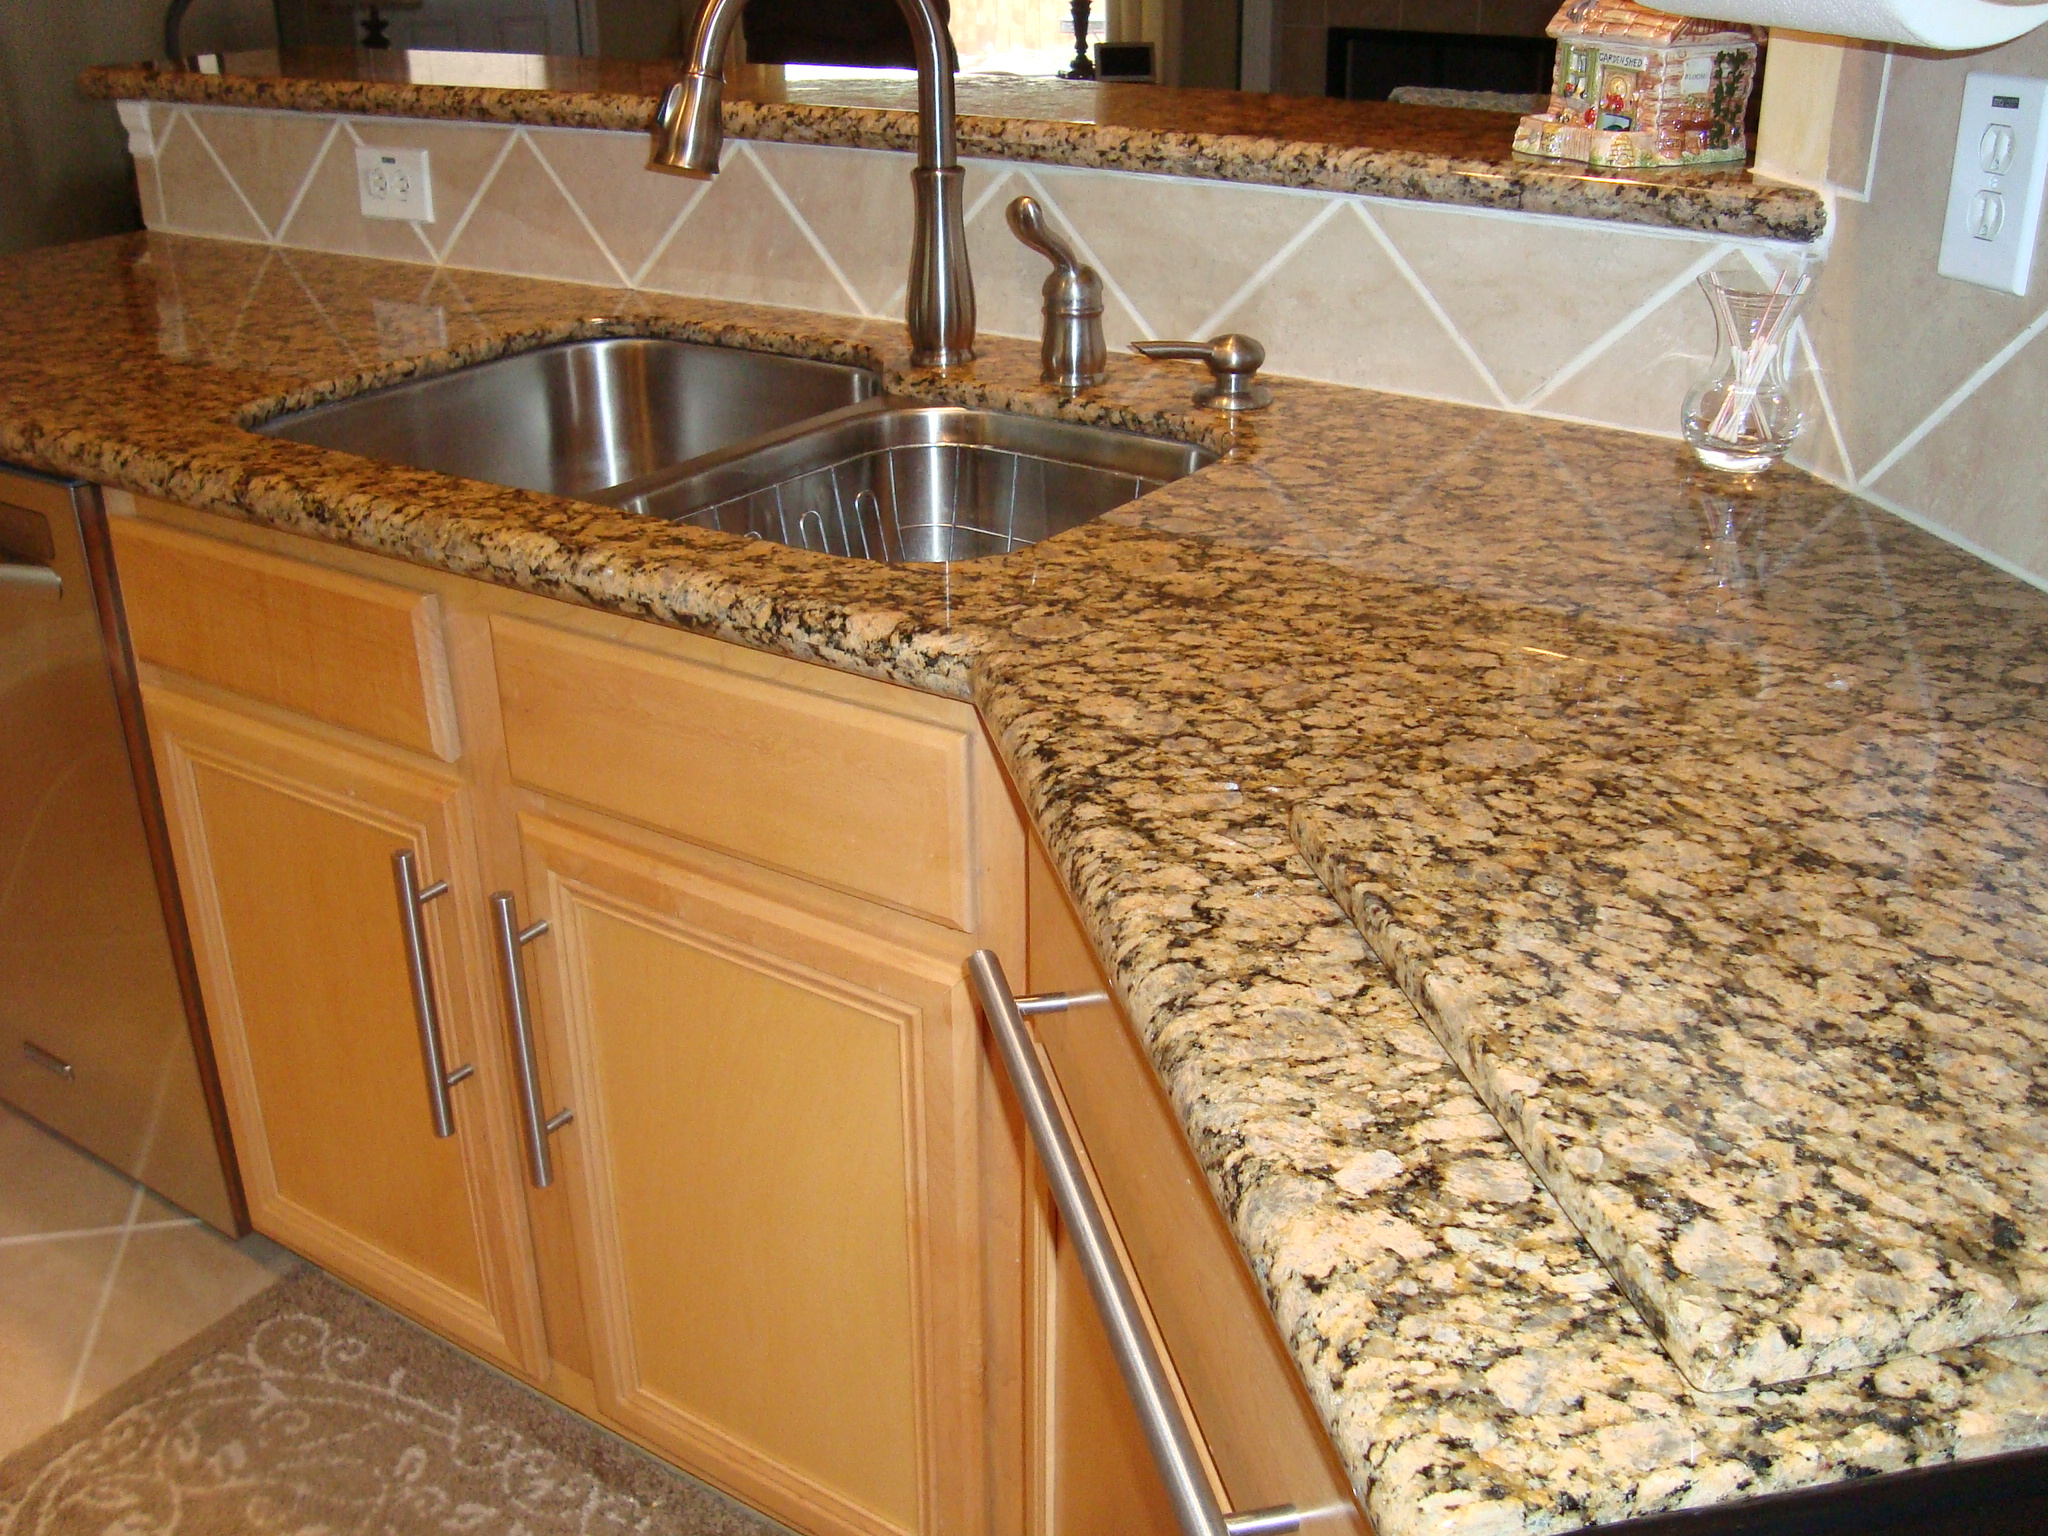 Kitchen Sinks With Granite Countertops Silestone Granite Caesarstone Zodiaq Viatera Countertops Houston